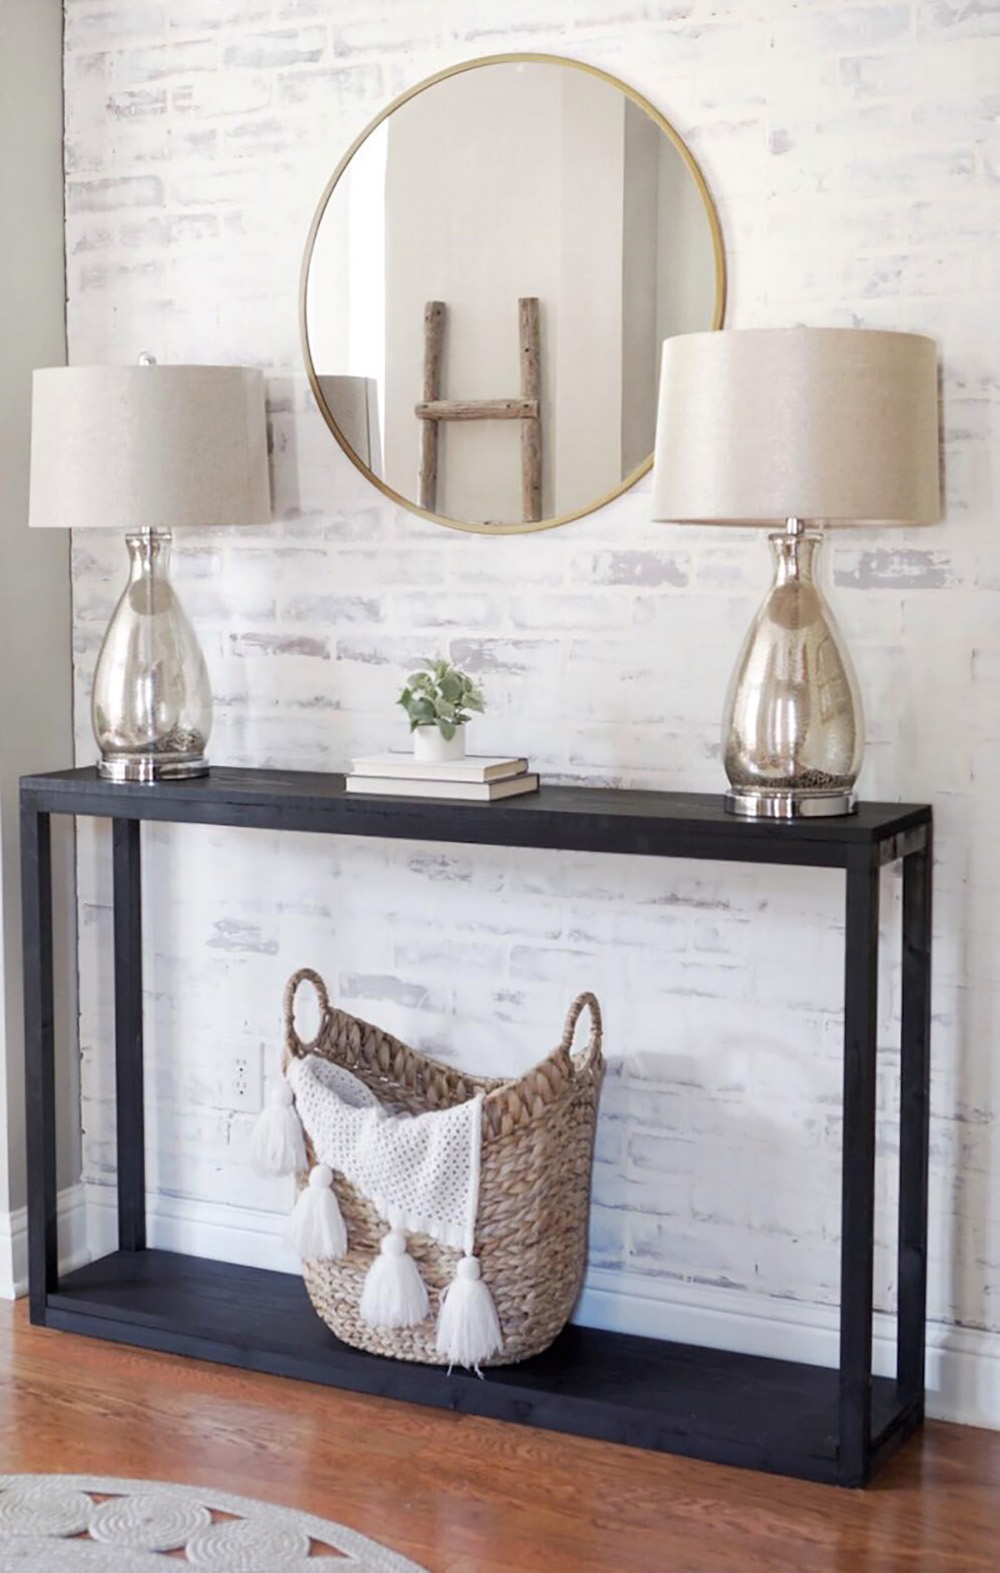 An updated entryway with a DIY faux whitewashed brick accent wall behind a table with two lamps and a mirror.